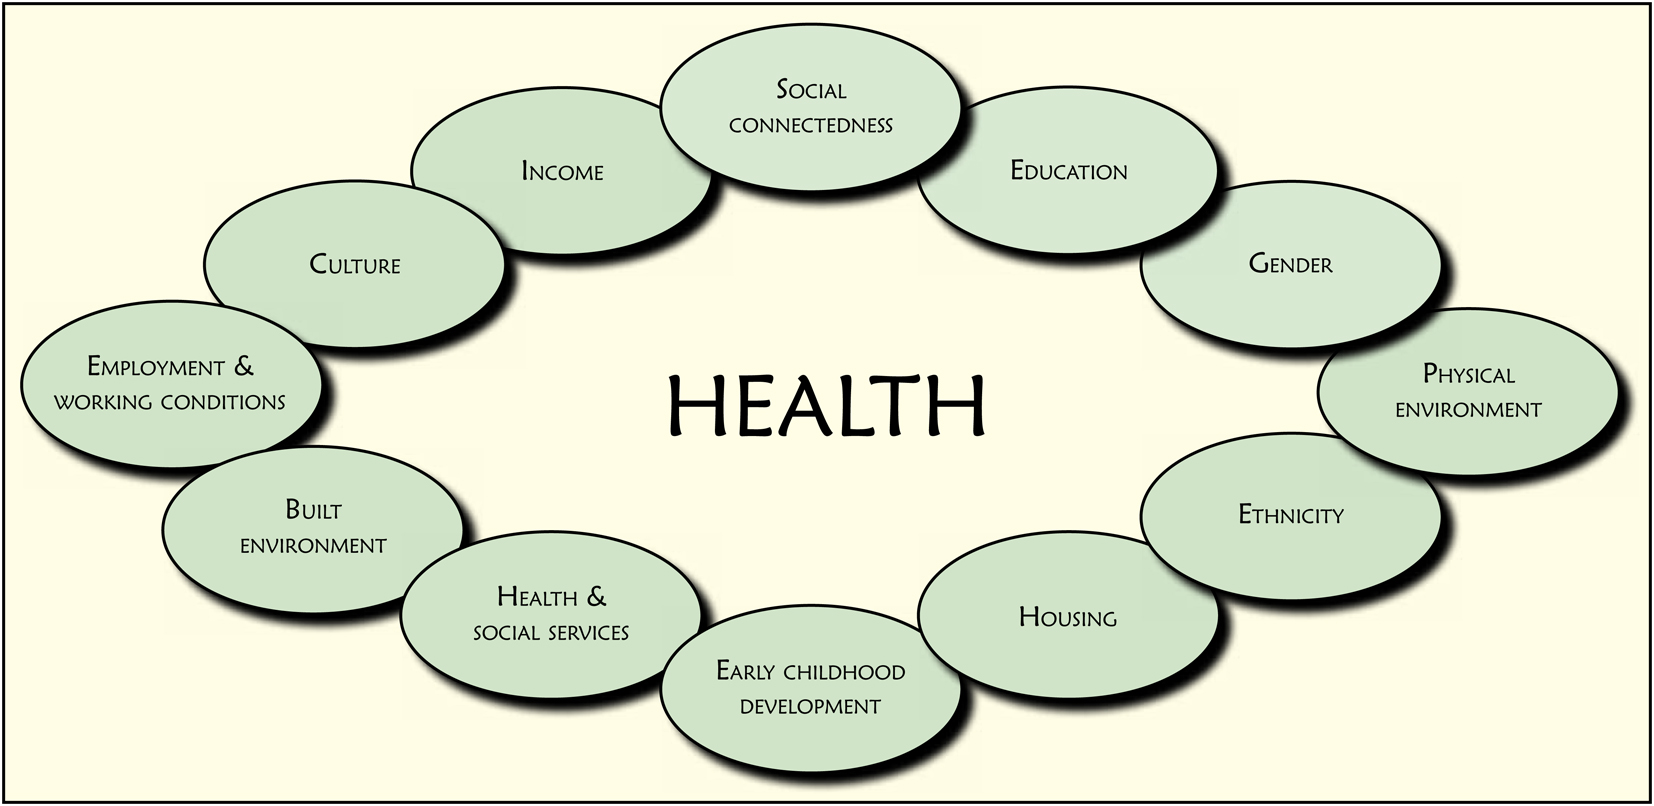 Social Determinants Of Health Idealstalist